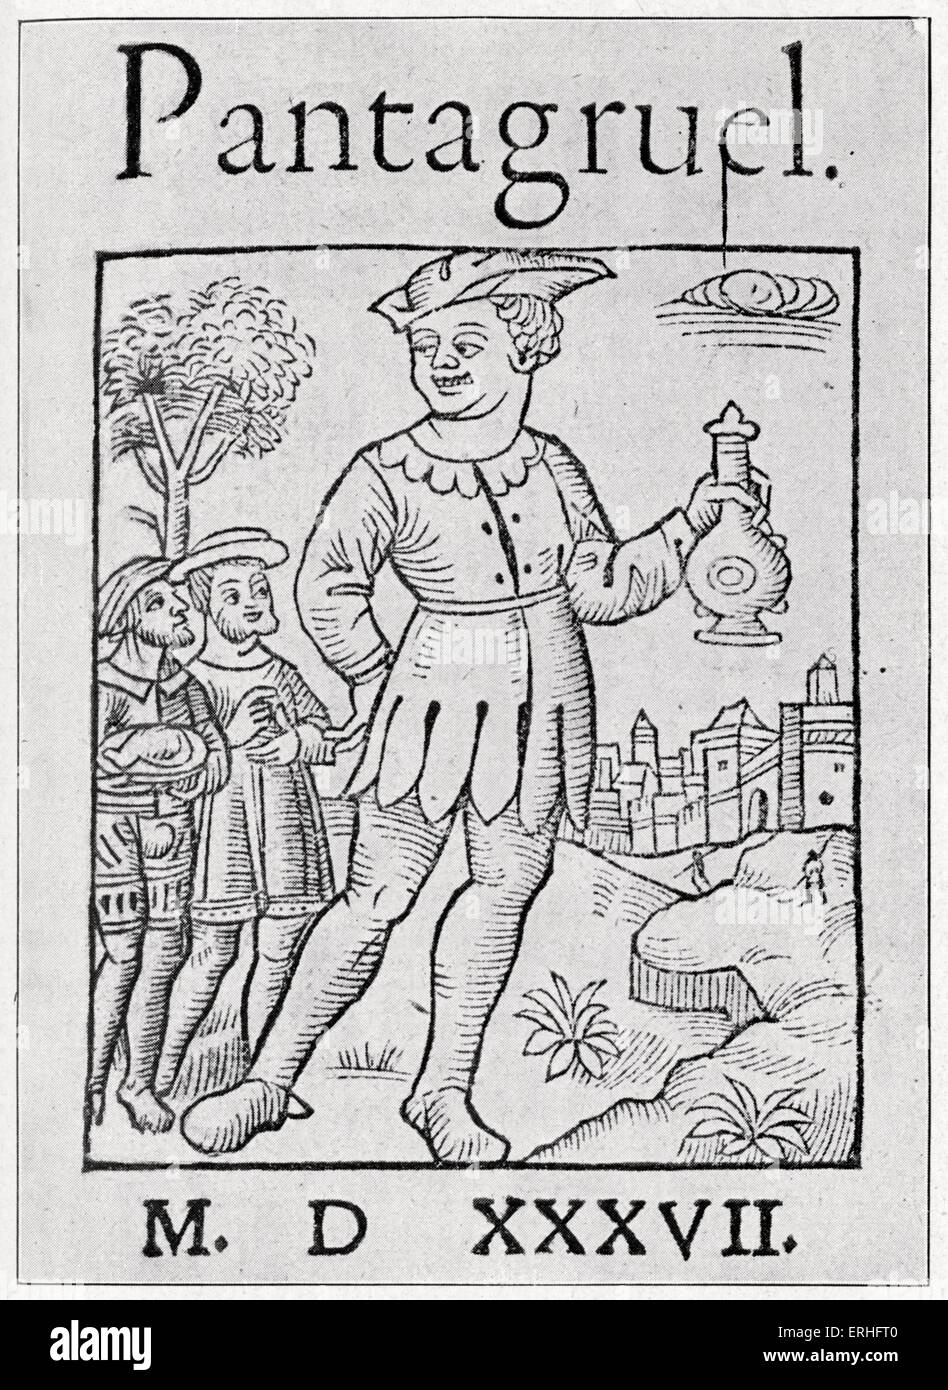 Pantagruel by Francois Rabelais - Engraved frontispiece to the 1537 series.  Son of Gargantua. Two giants travelling in a world